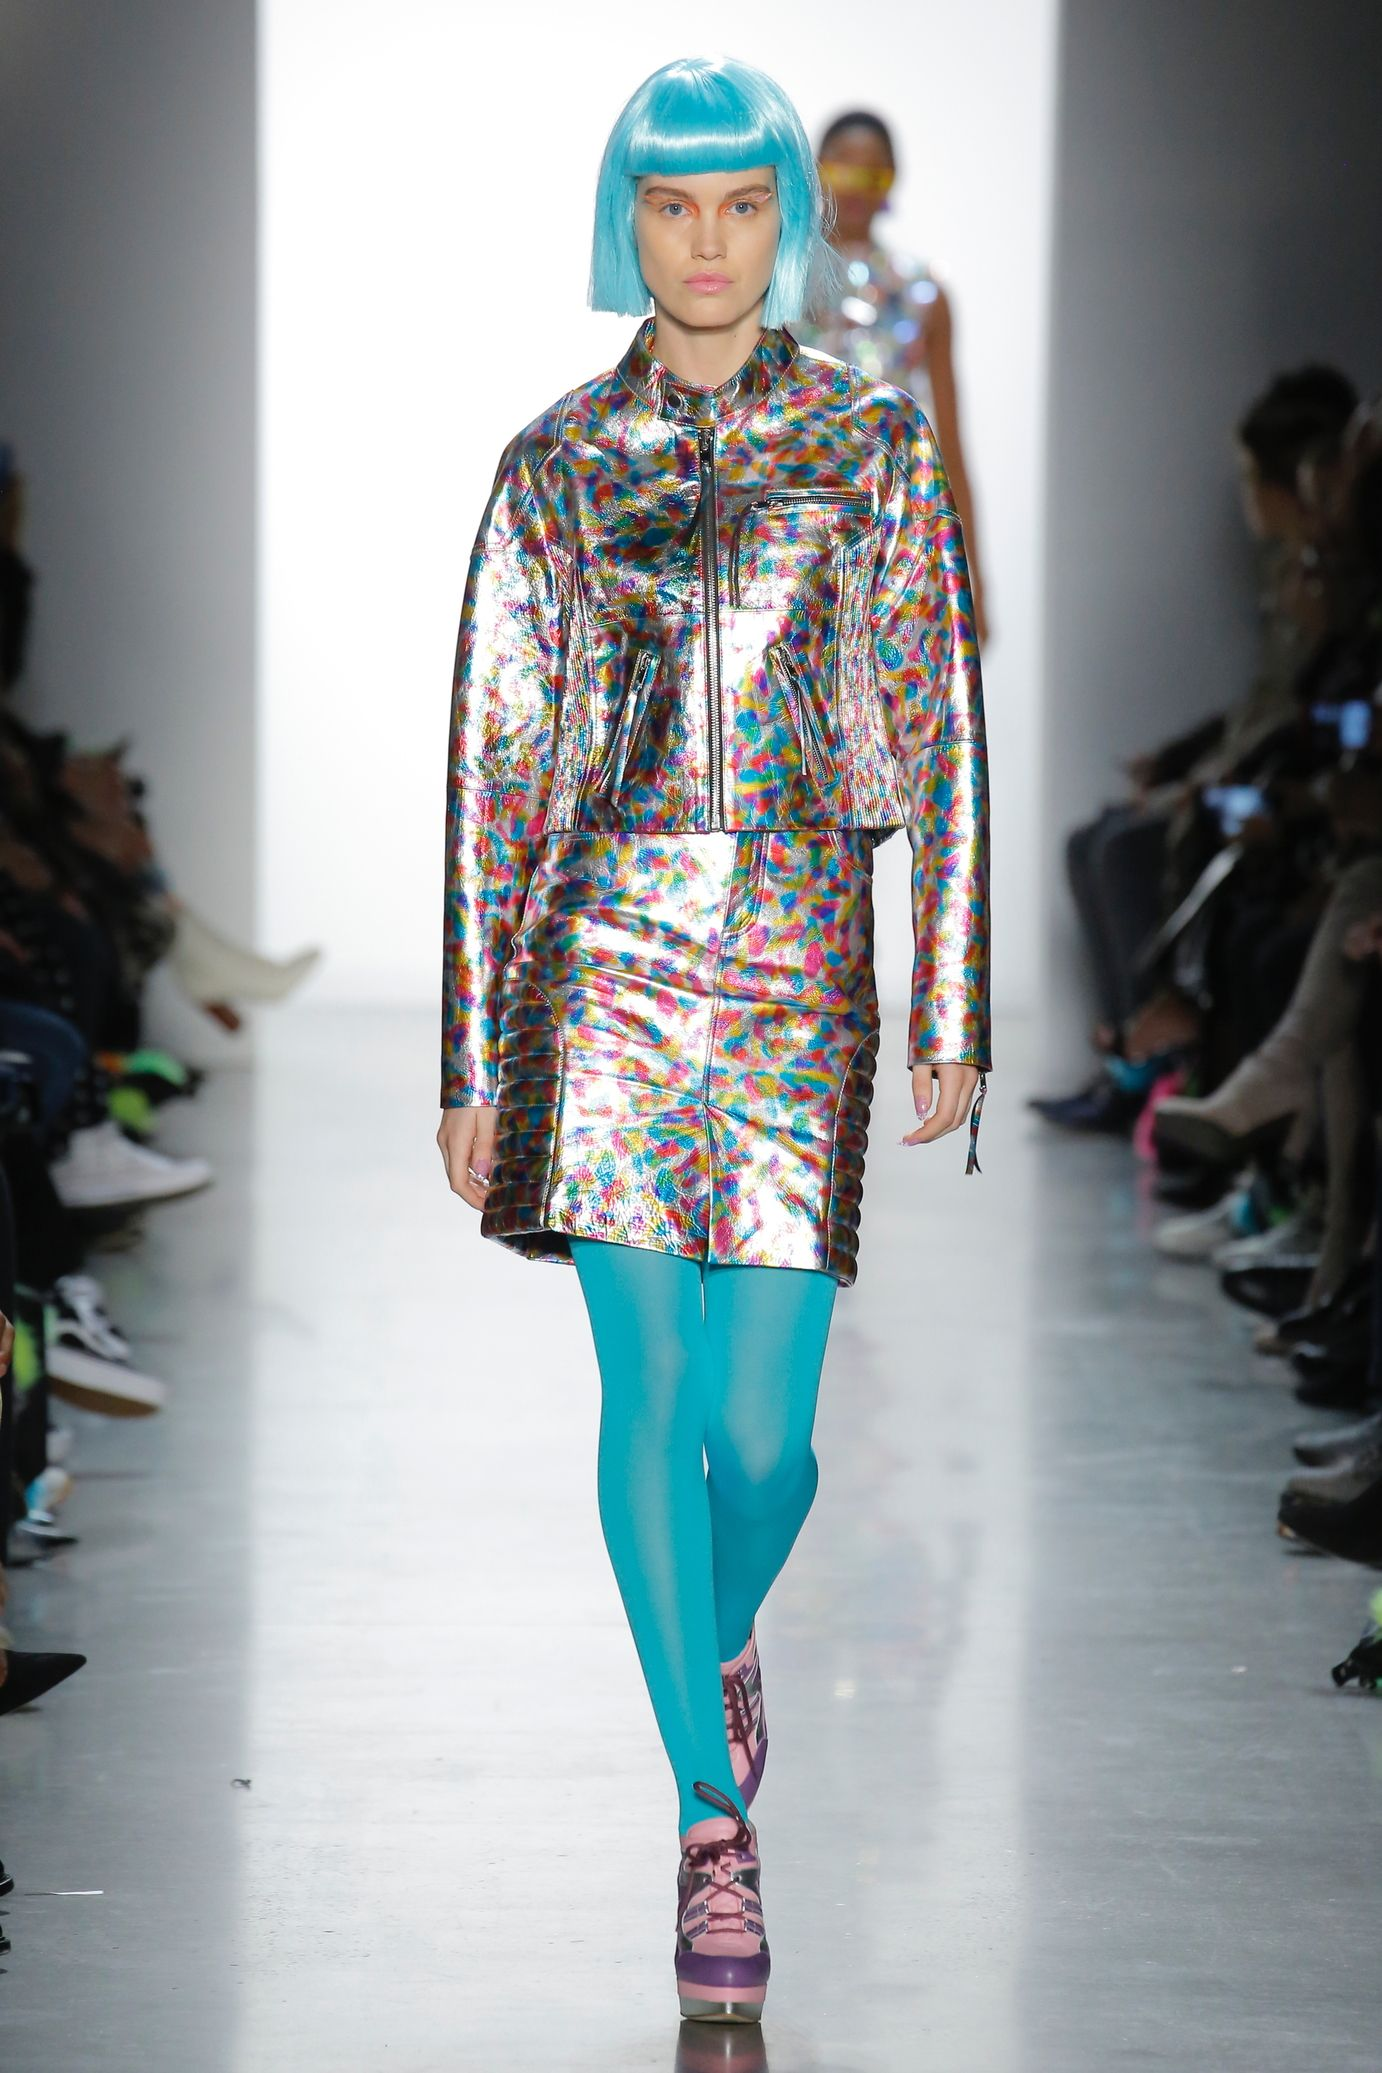 Image result for jeremy scott holographic fashions fall 2018